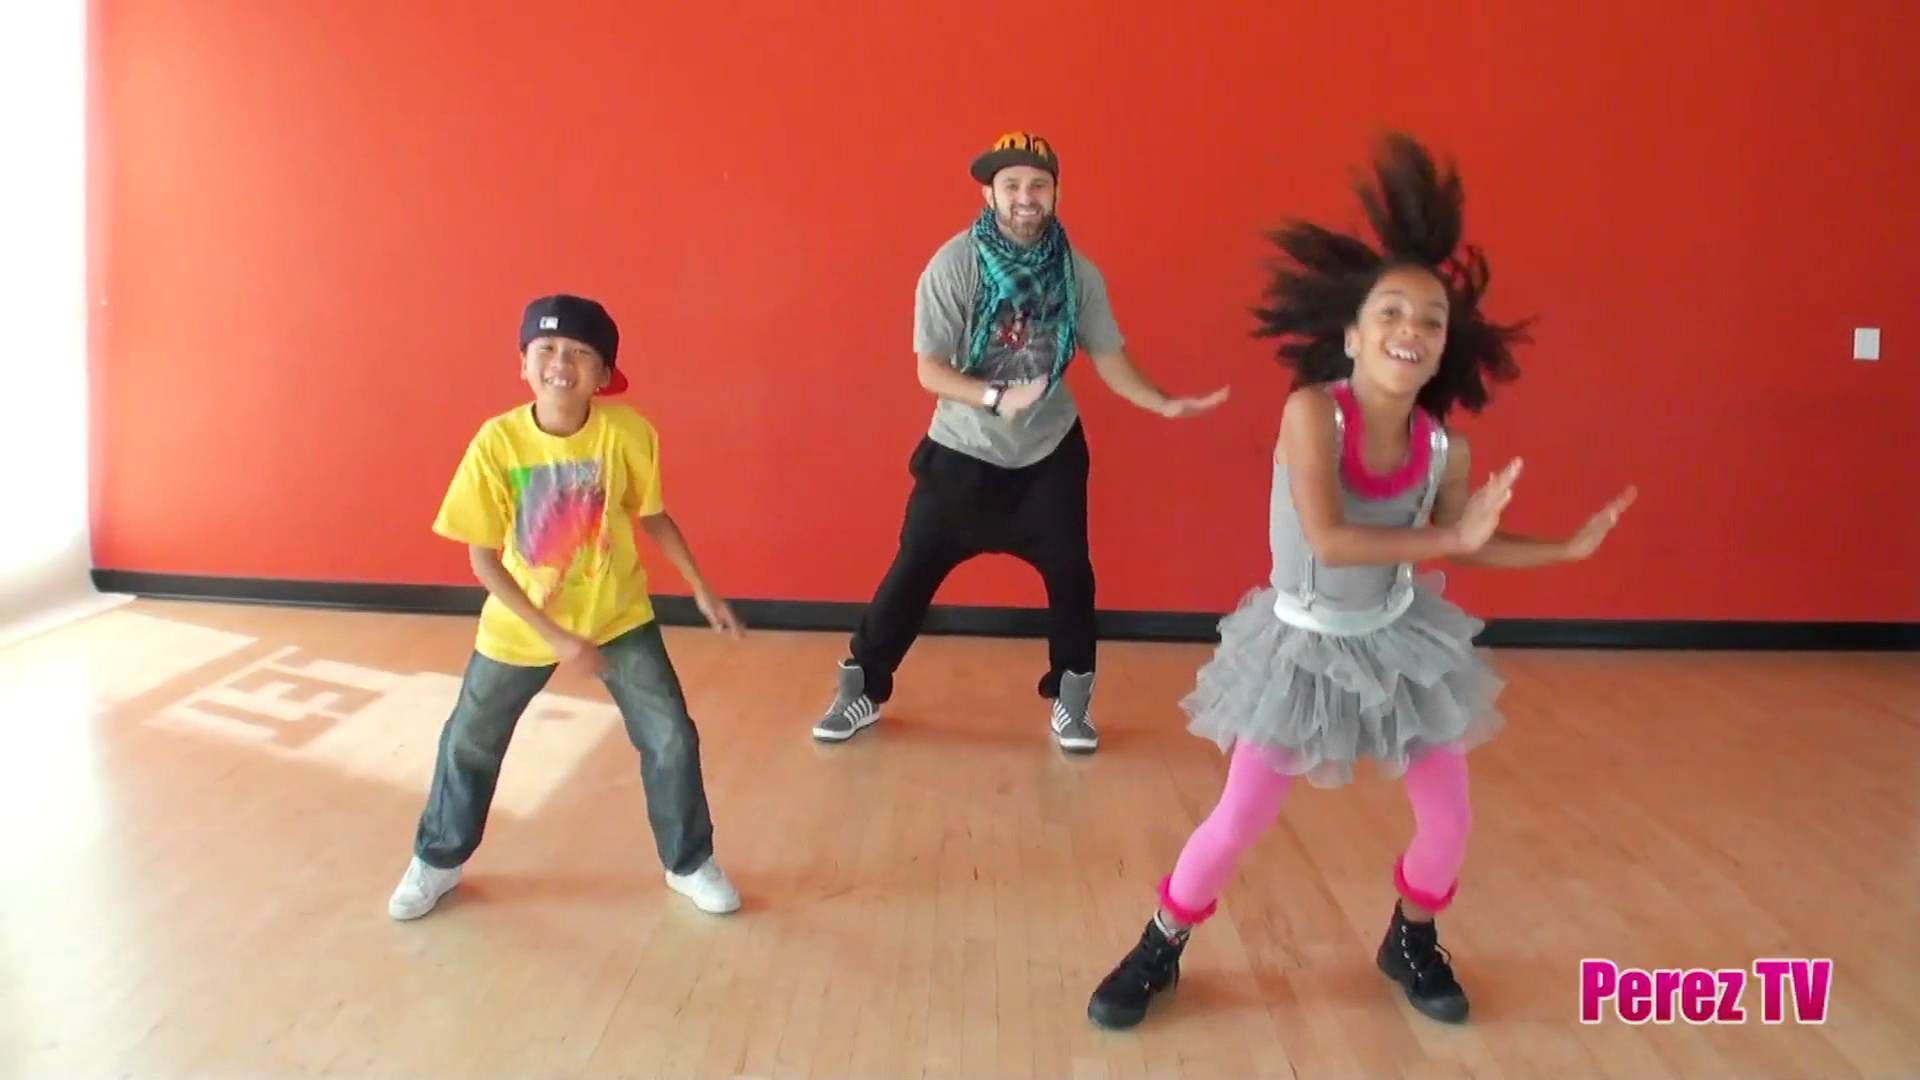 Fun Dance Routine To Do With Kids